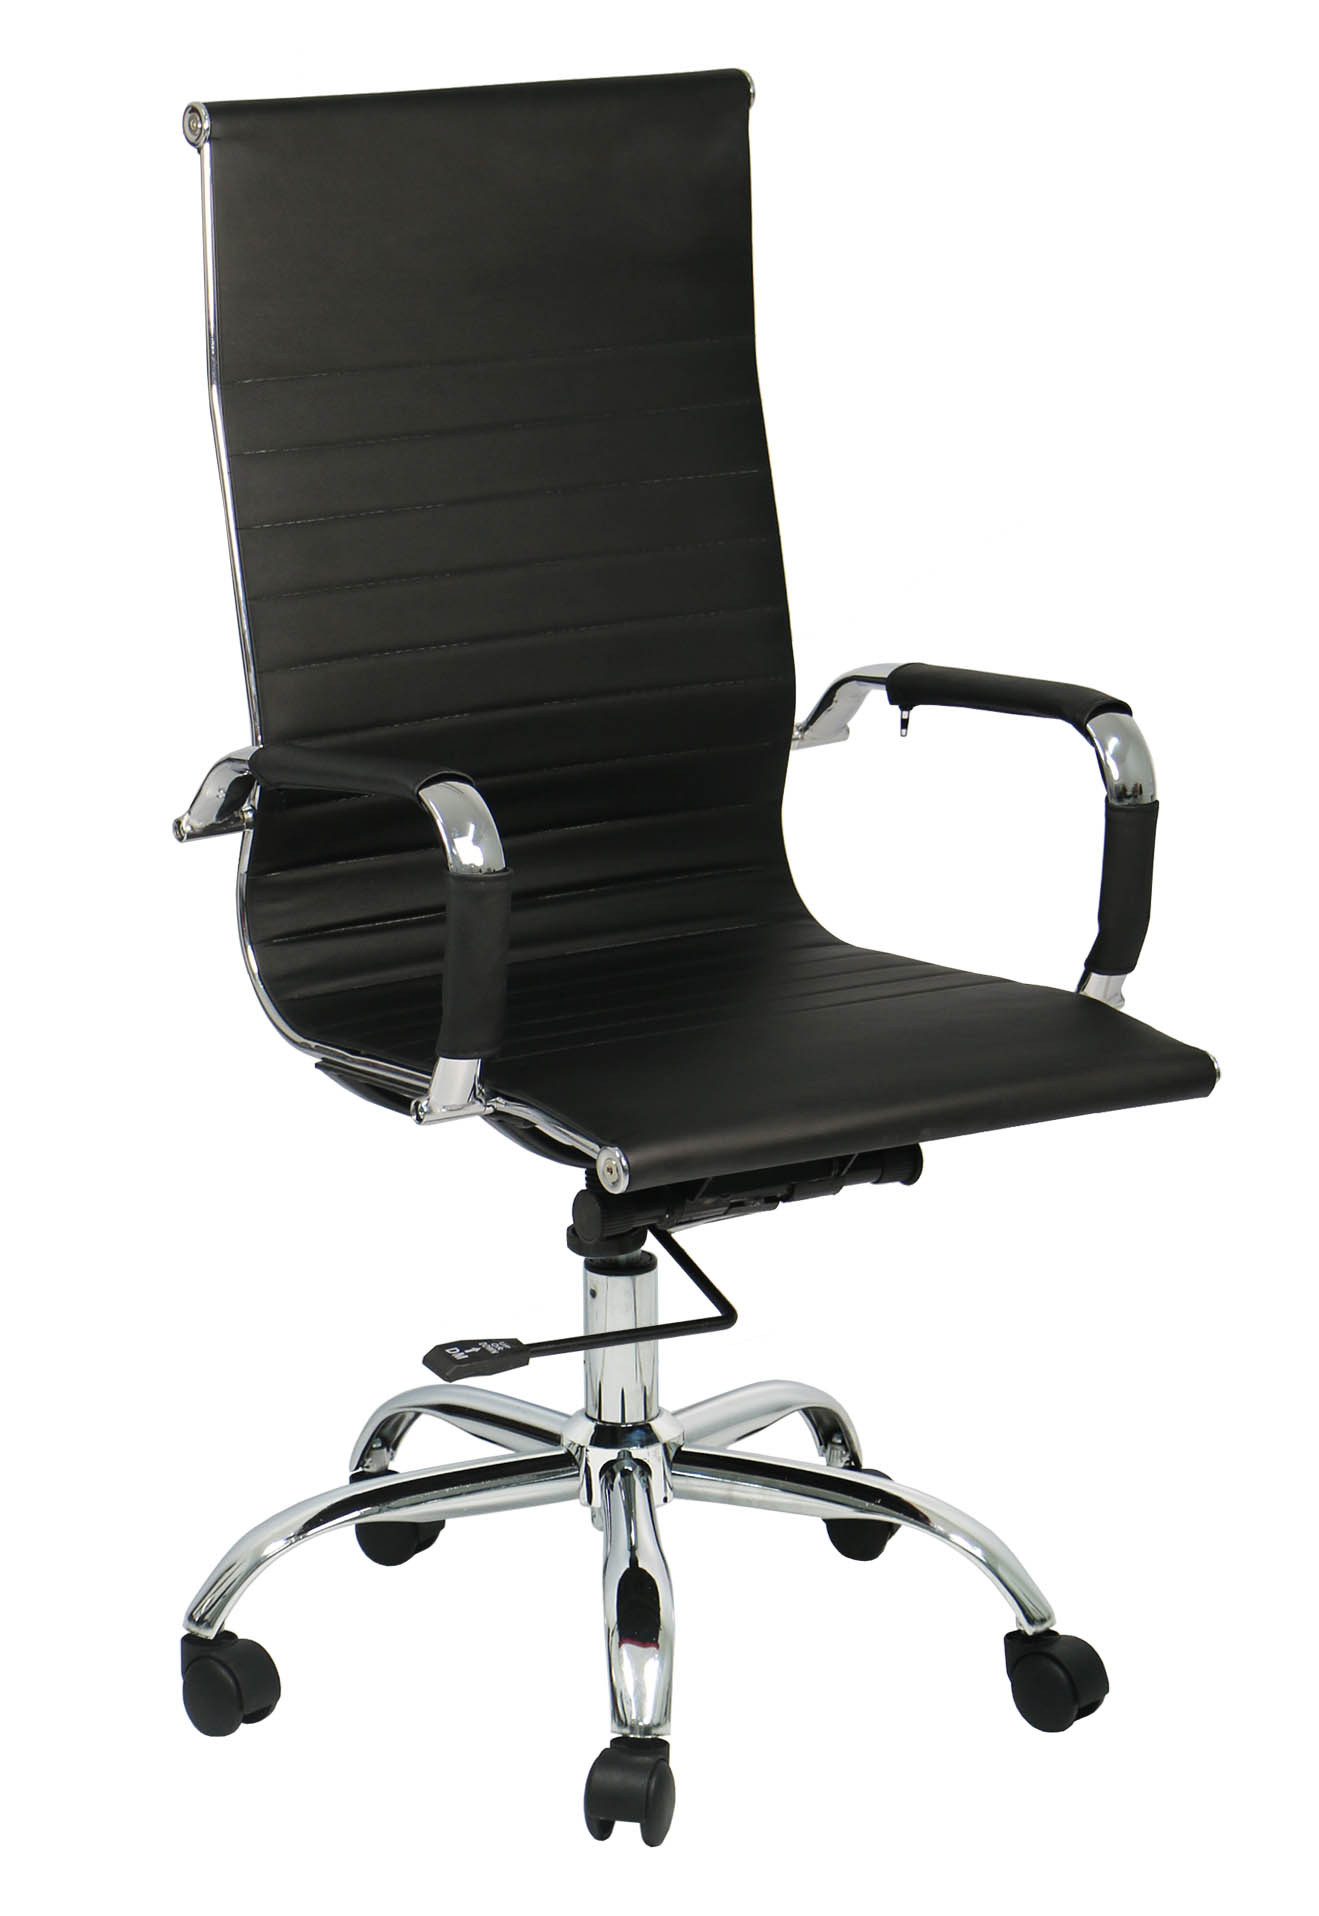 Eames office chair highback replica black furniture for Eames replica